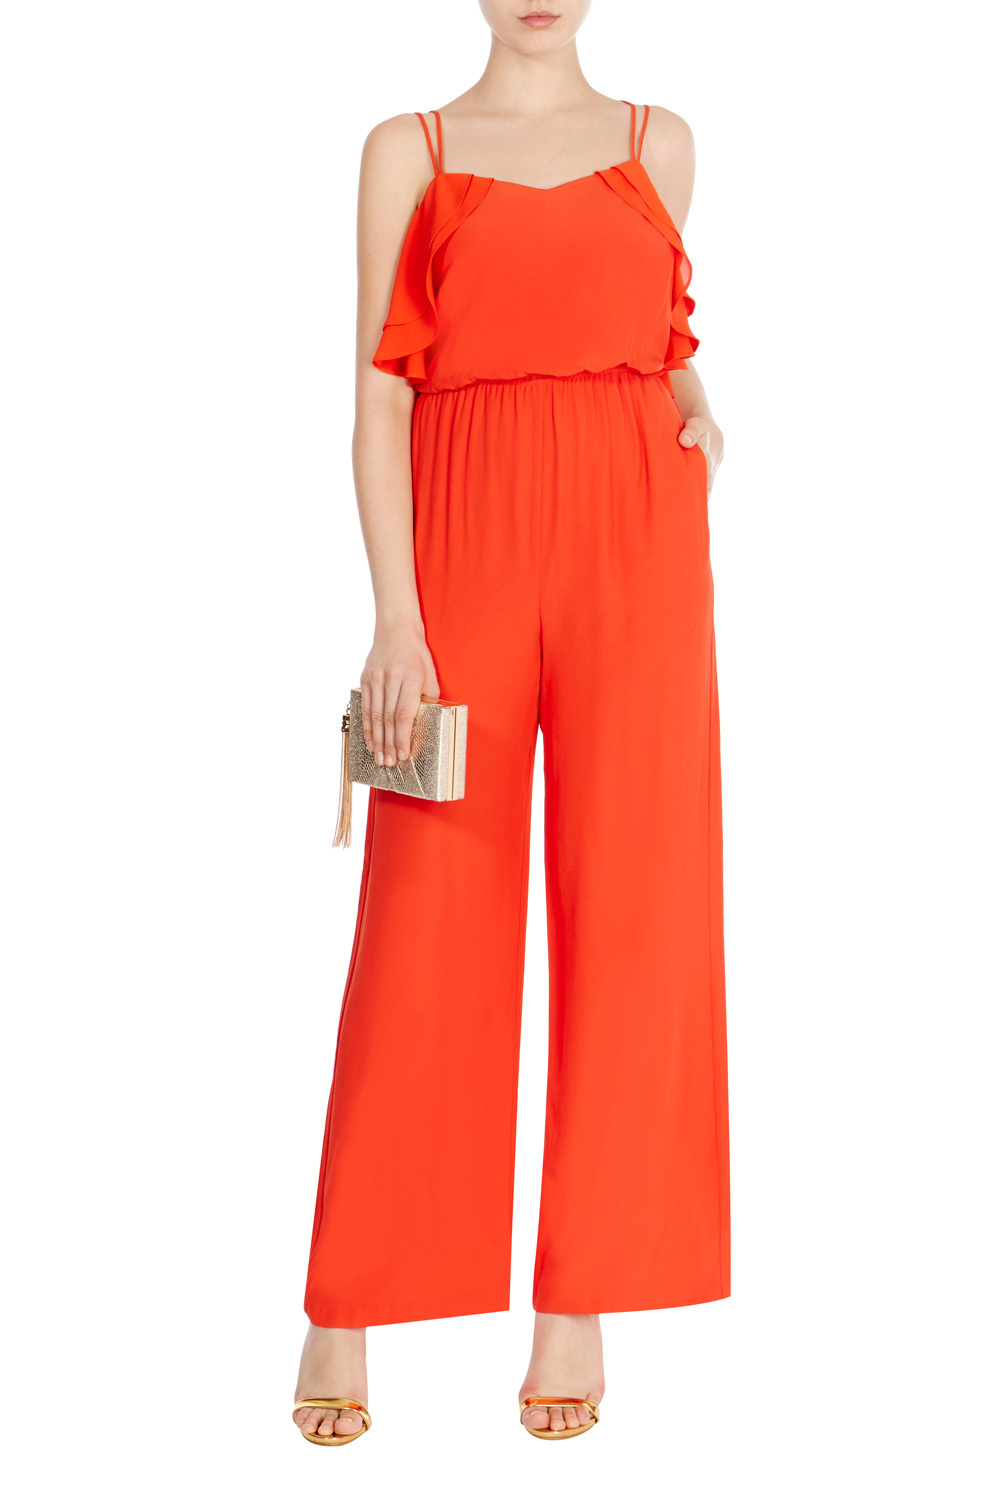 Kora Jumpsuit - length: standard; neckline: v-neck; sleeve style: spaghetti straps; fit: fitted at waist; pattern: plain; predominant colour: bright orange; occasions: evening, occasion; sleeve length: sleeveless; texture group: crepes; style: jumpsuit; pattern type: fabric; fibres: viscose/rayon - mix; season: s/s 2016; wardrobe: event